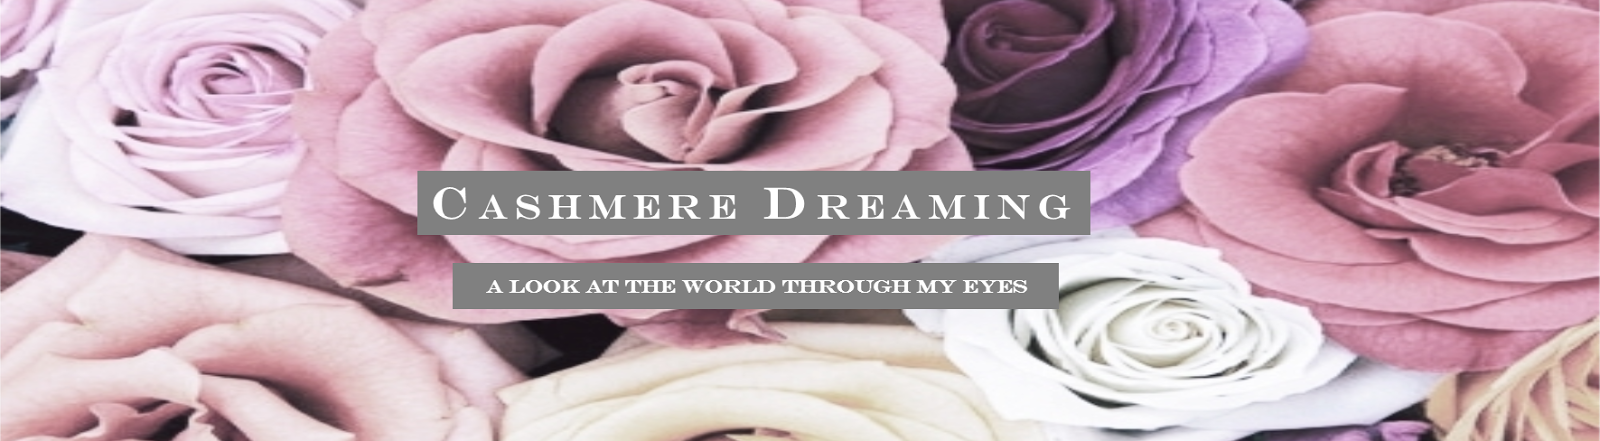 Cashmere Dreaming